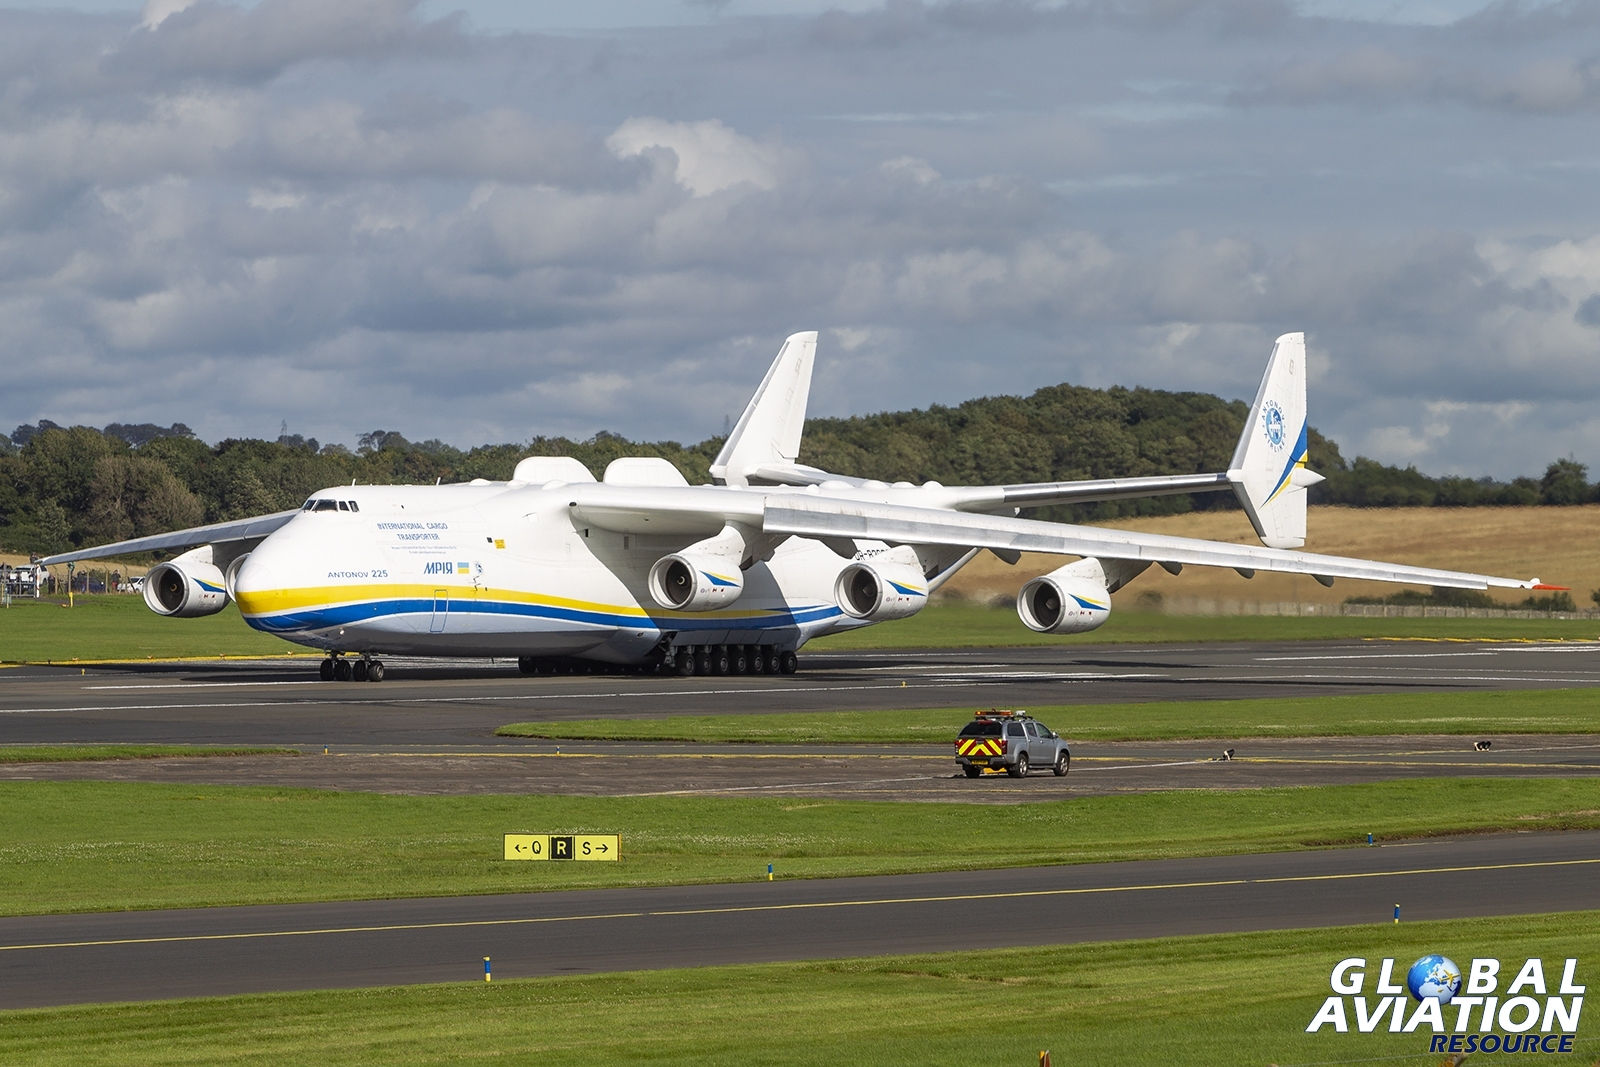 An-225 © Tom Gibbons - Global Aviation Resource